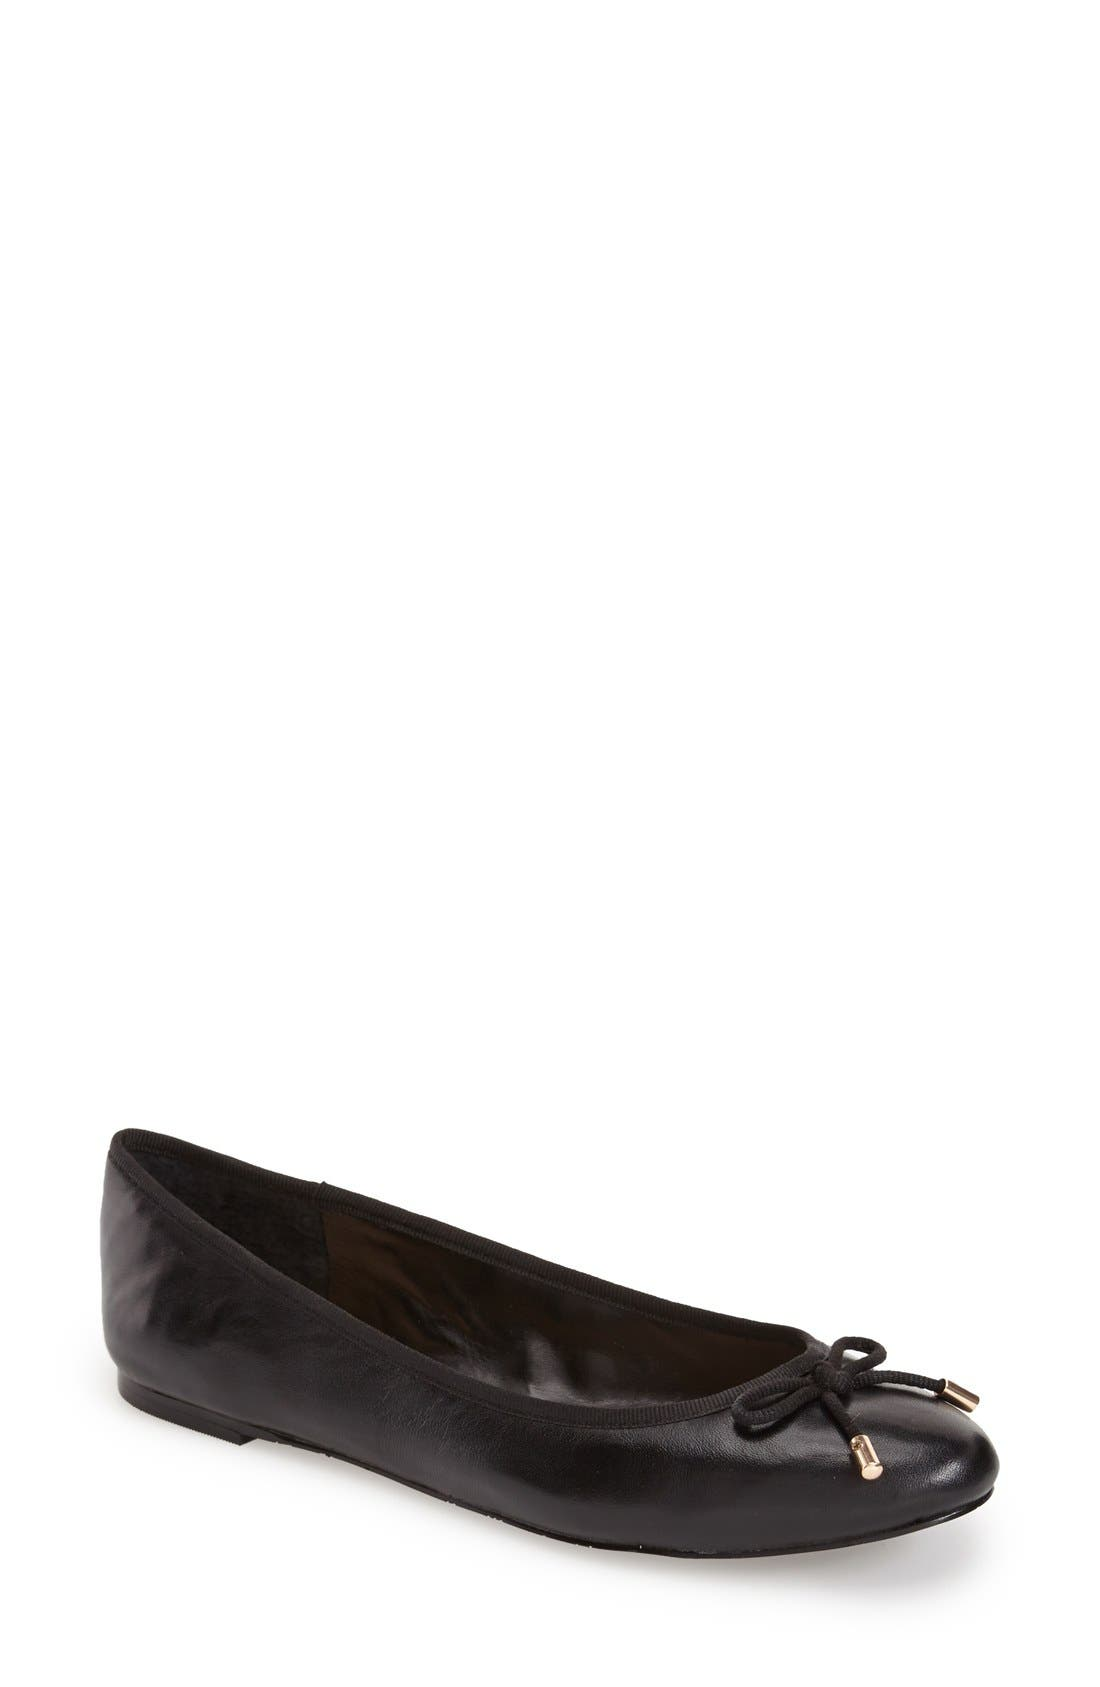 Main Image - Sole Society 'Natalie' Leather Ballet Flat (Women)